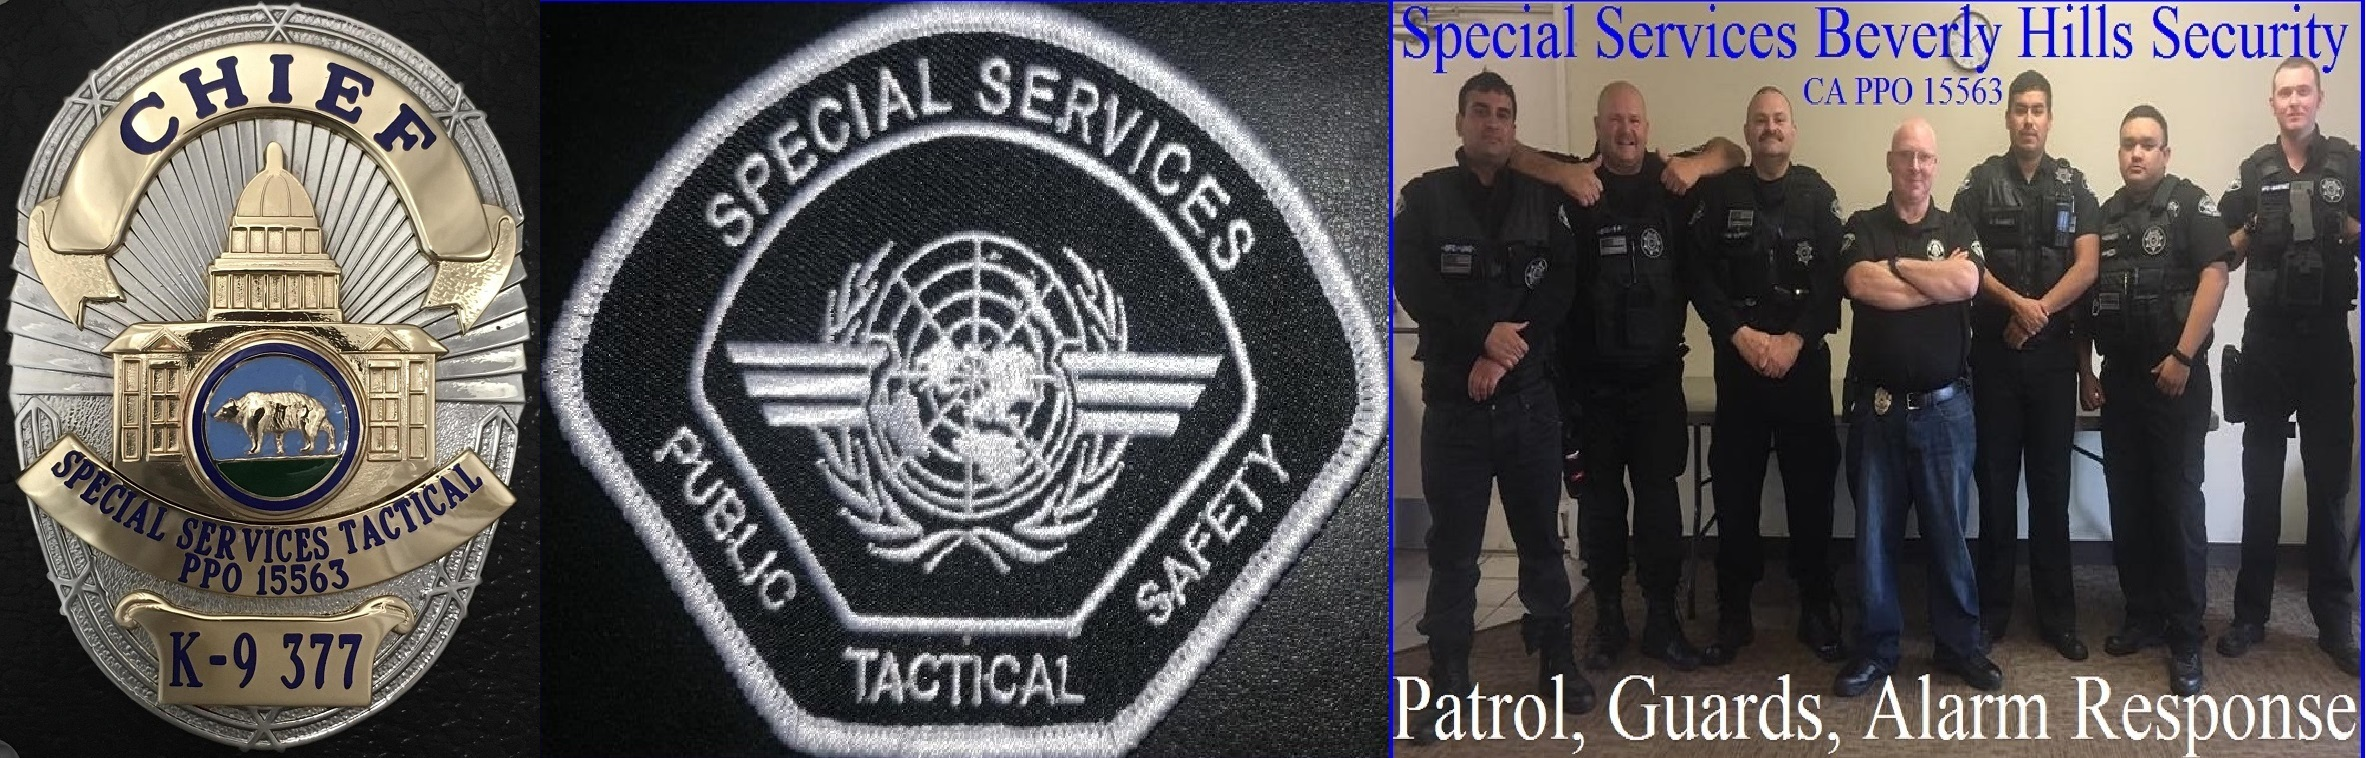 Special Services PPO 15563, The Bodyguard Group of Beverly Hills Security Patrol, Beverly Hills security guards services, Beverly Hills 90210 alarm response 90210